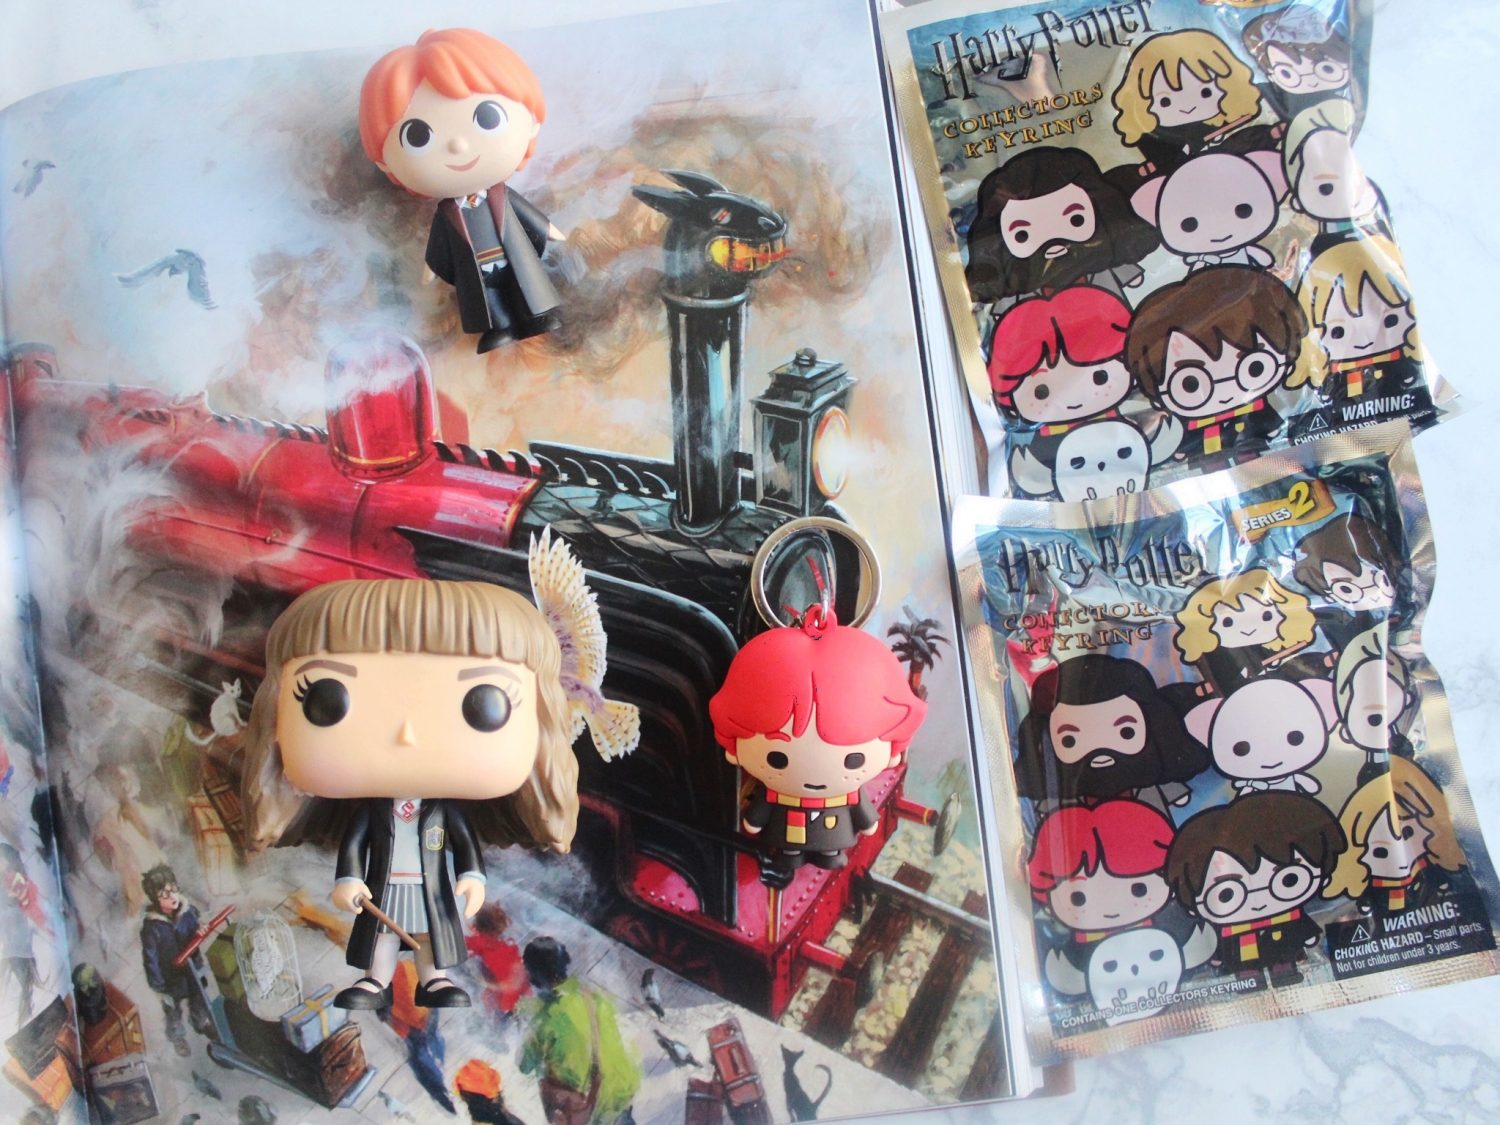 Harry Potter Series 2 Figural Keyrings